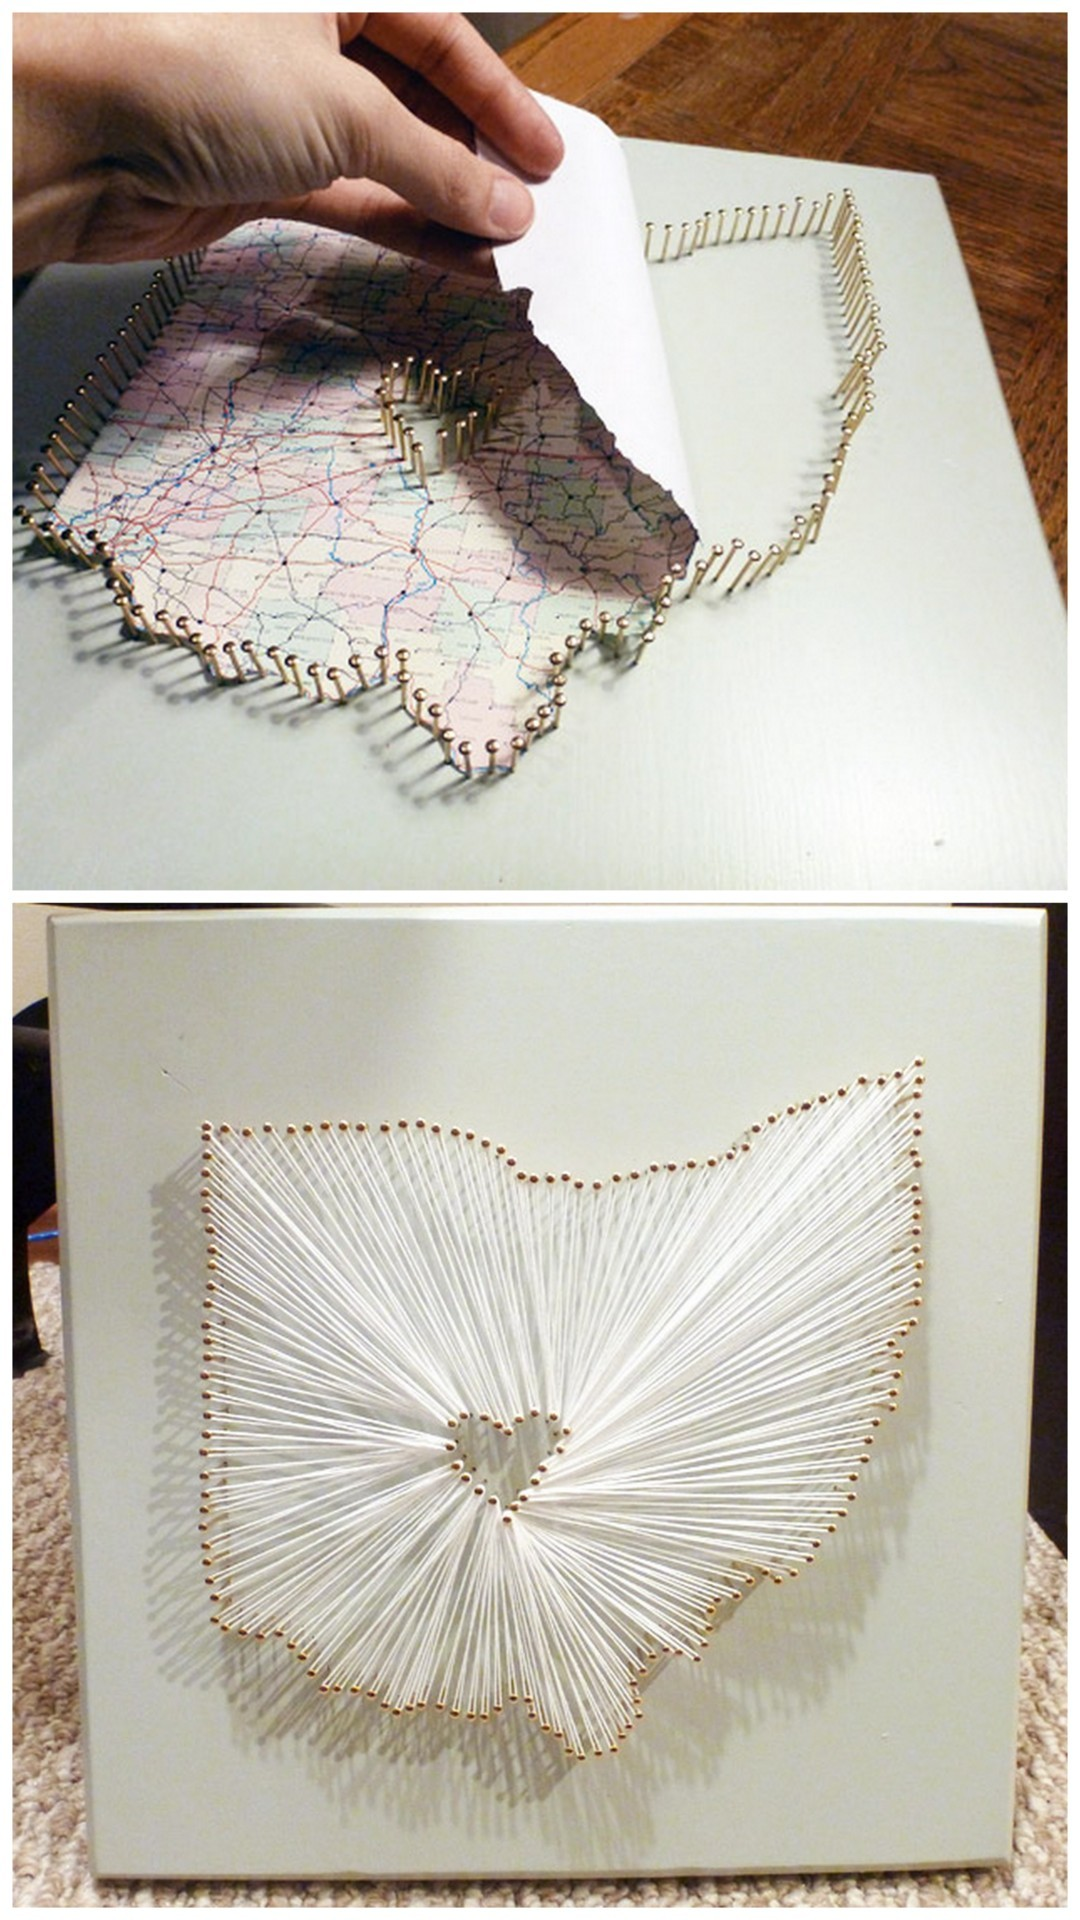 "truebluemeandyou:  DIY String Map Art with a Heart in the Middle. I've seen these selling on Etsy and elsewhere. Really good tutorial from The Harpster Home here. *Read comments for more suggestions and tips for making this. More String Art Tutorials:   Really colorful one spelling out ""Rave On"" here. Heart of String here. LOVE String Art in Cursive here."